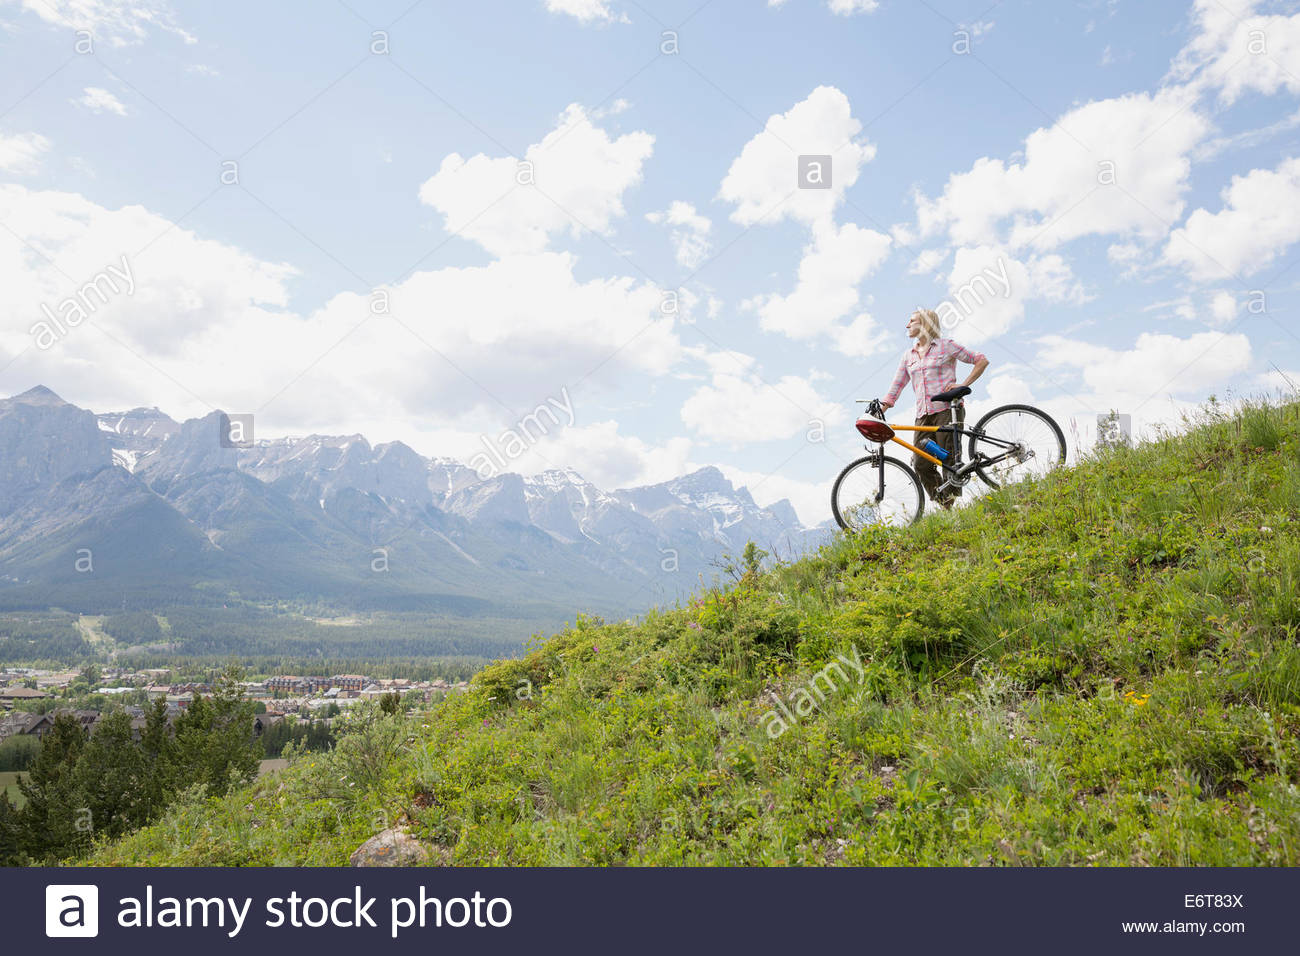 Woman standing with mountain bike on hillside - Stock Image